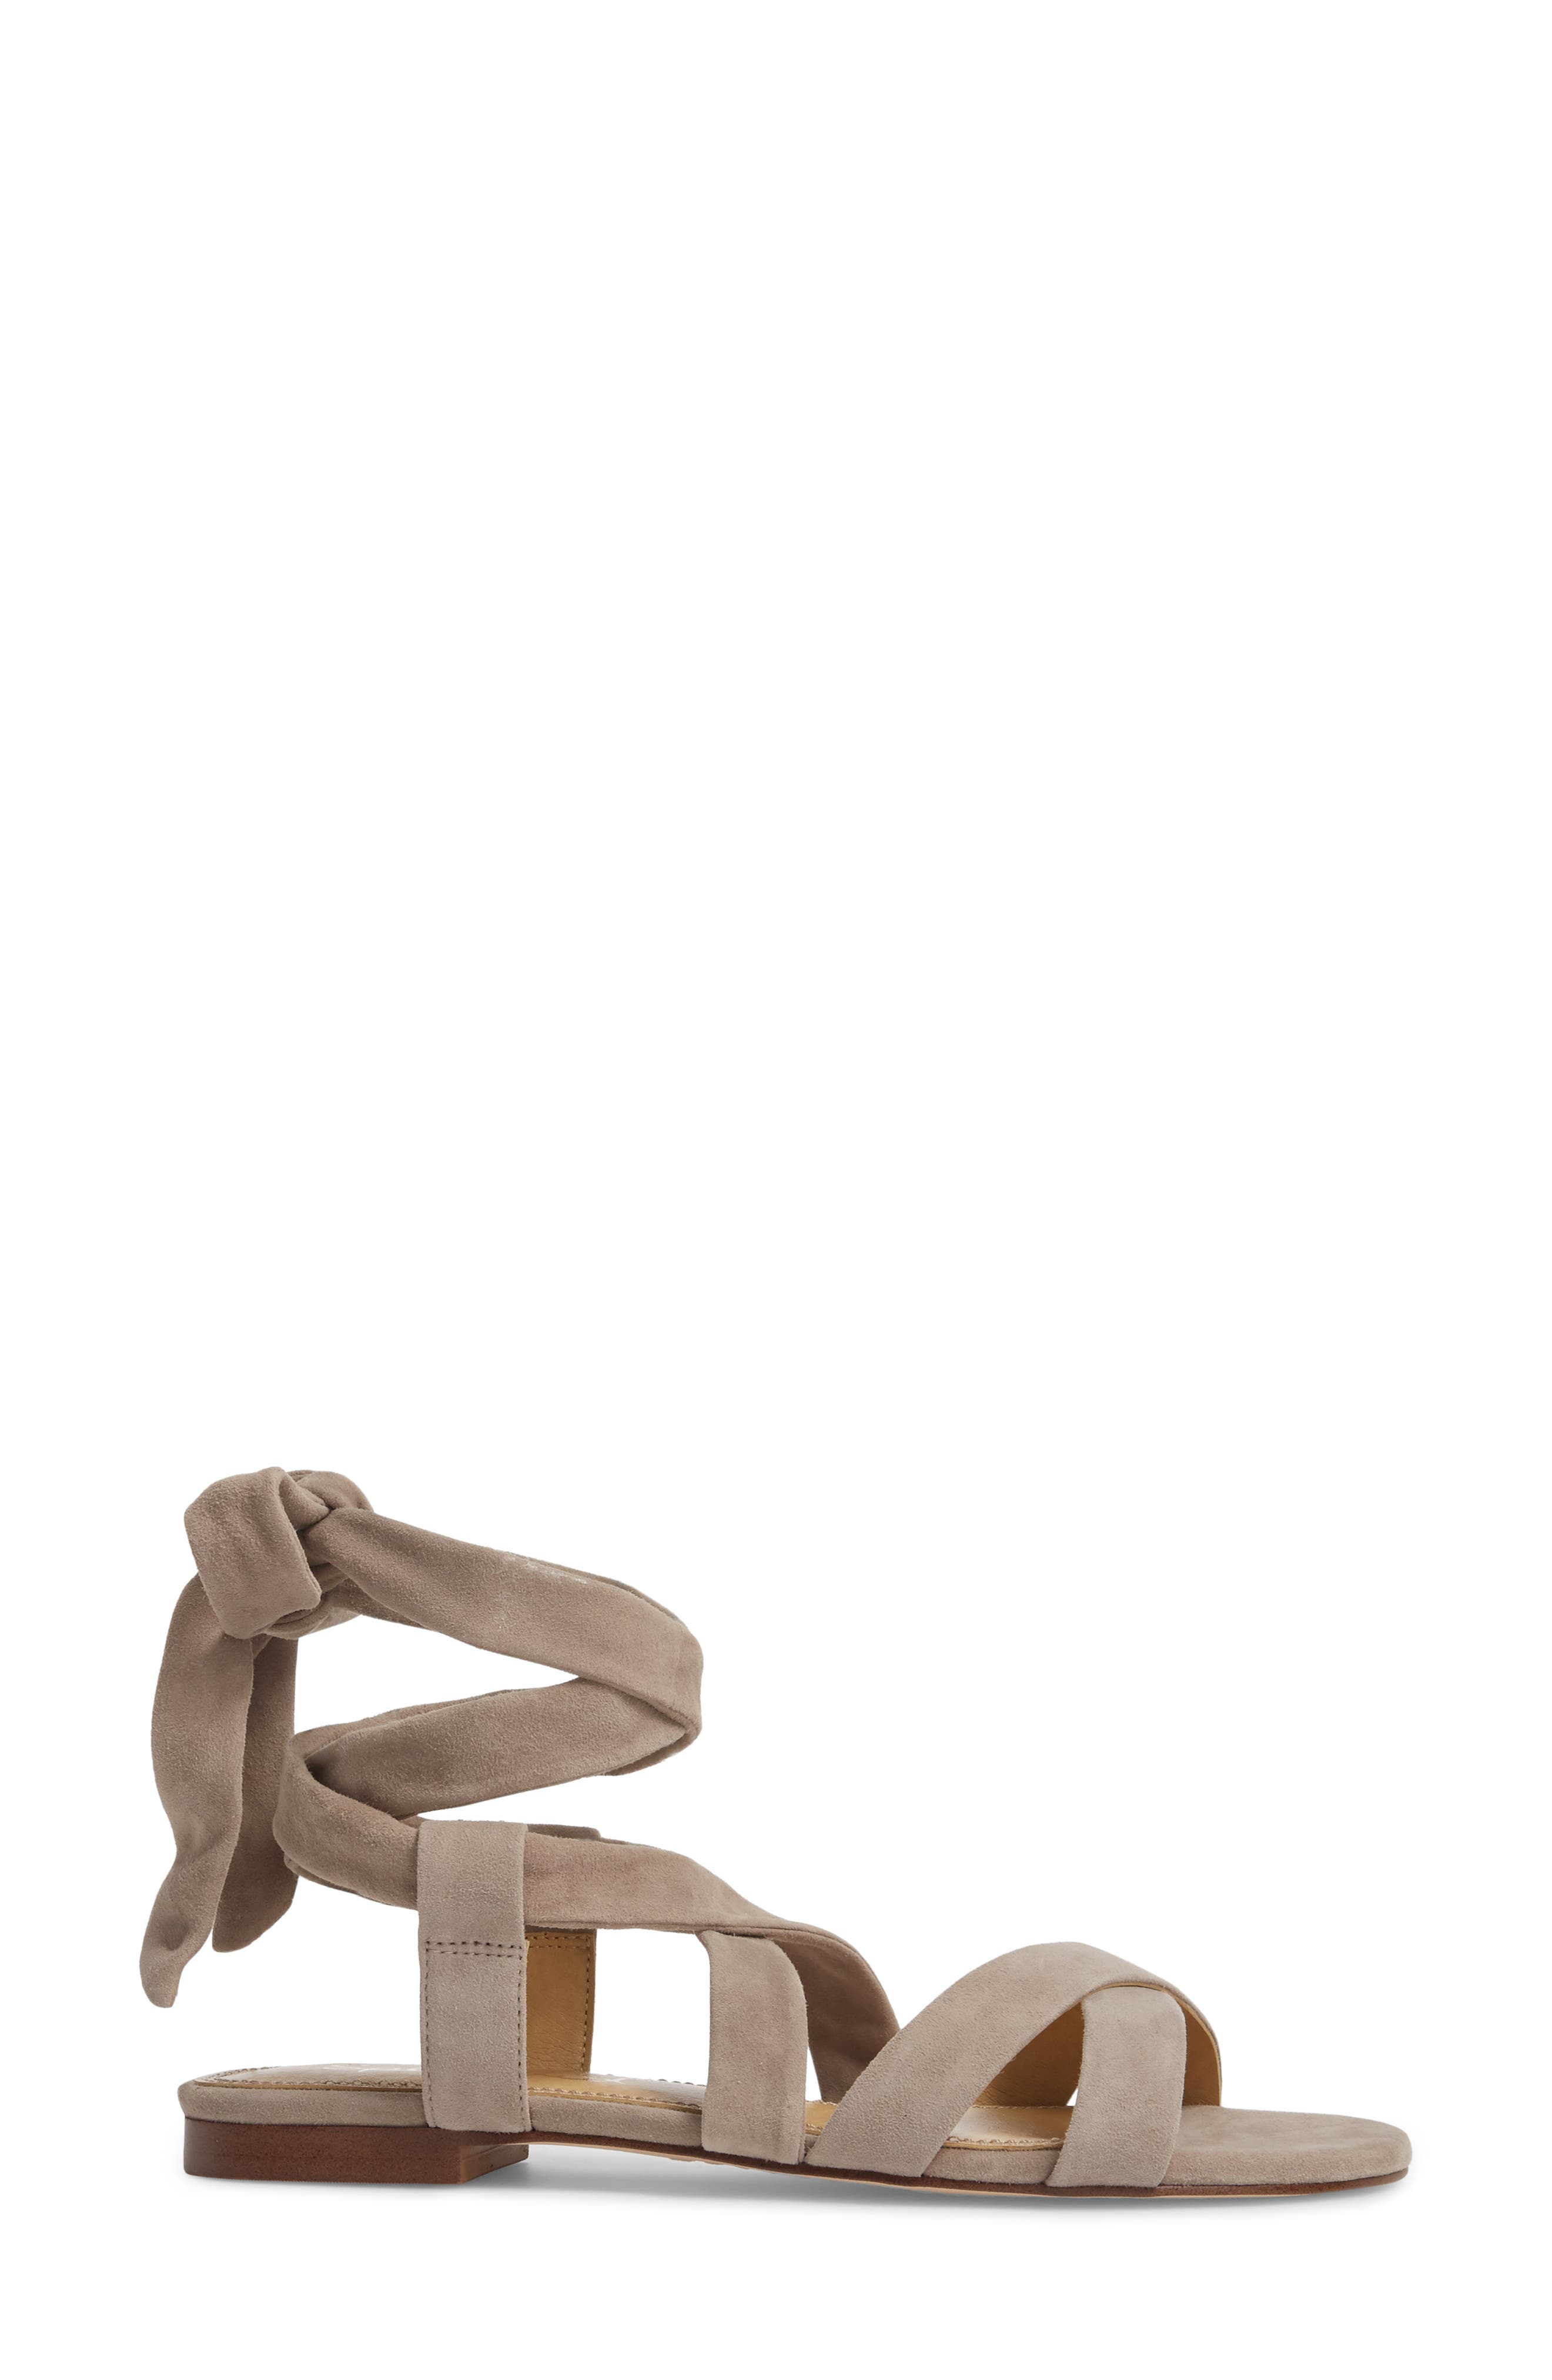 Feodora Ankle Wrap Sandal,                             Alternate thumbnail 3, color,                             TAUPE SUEDE